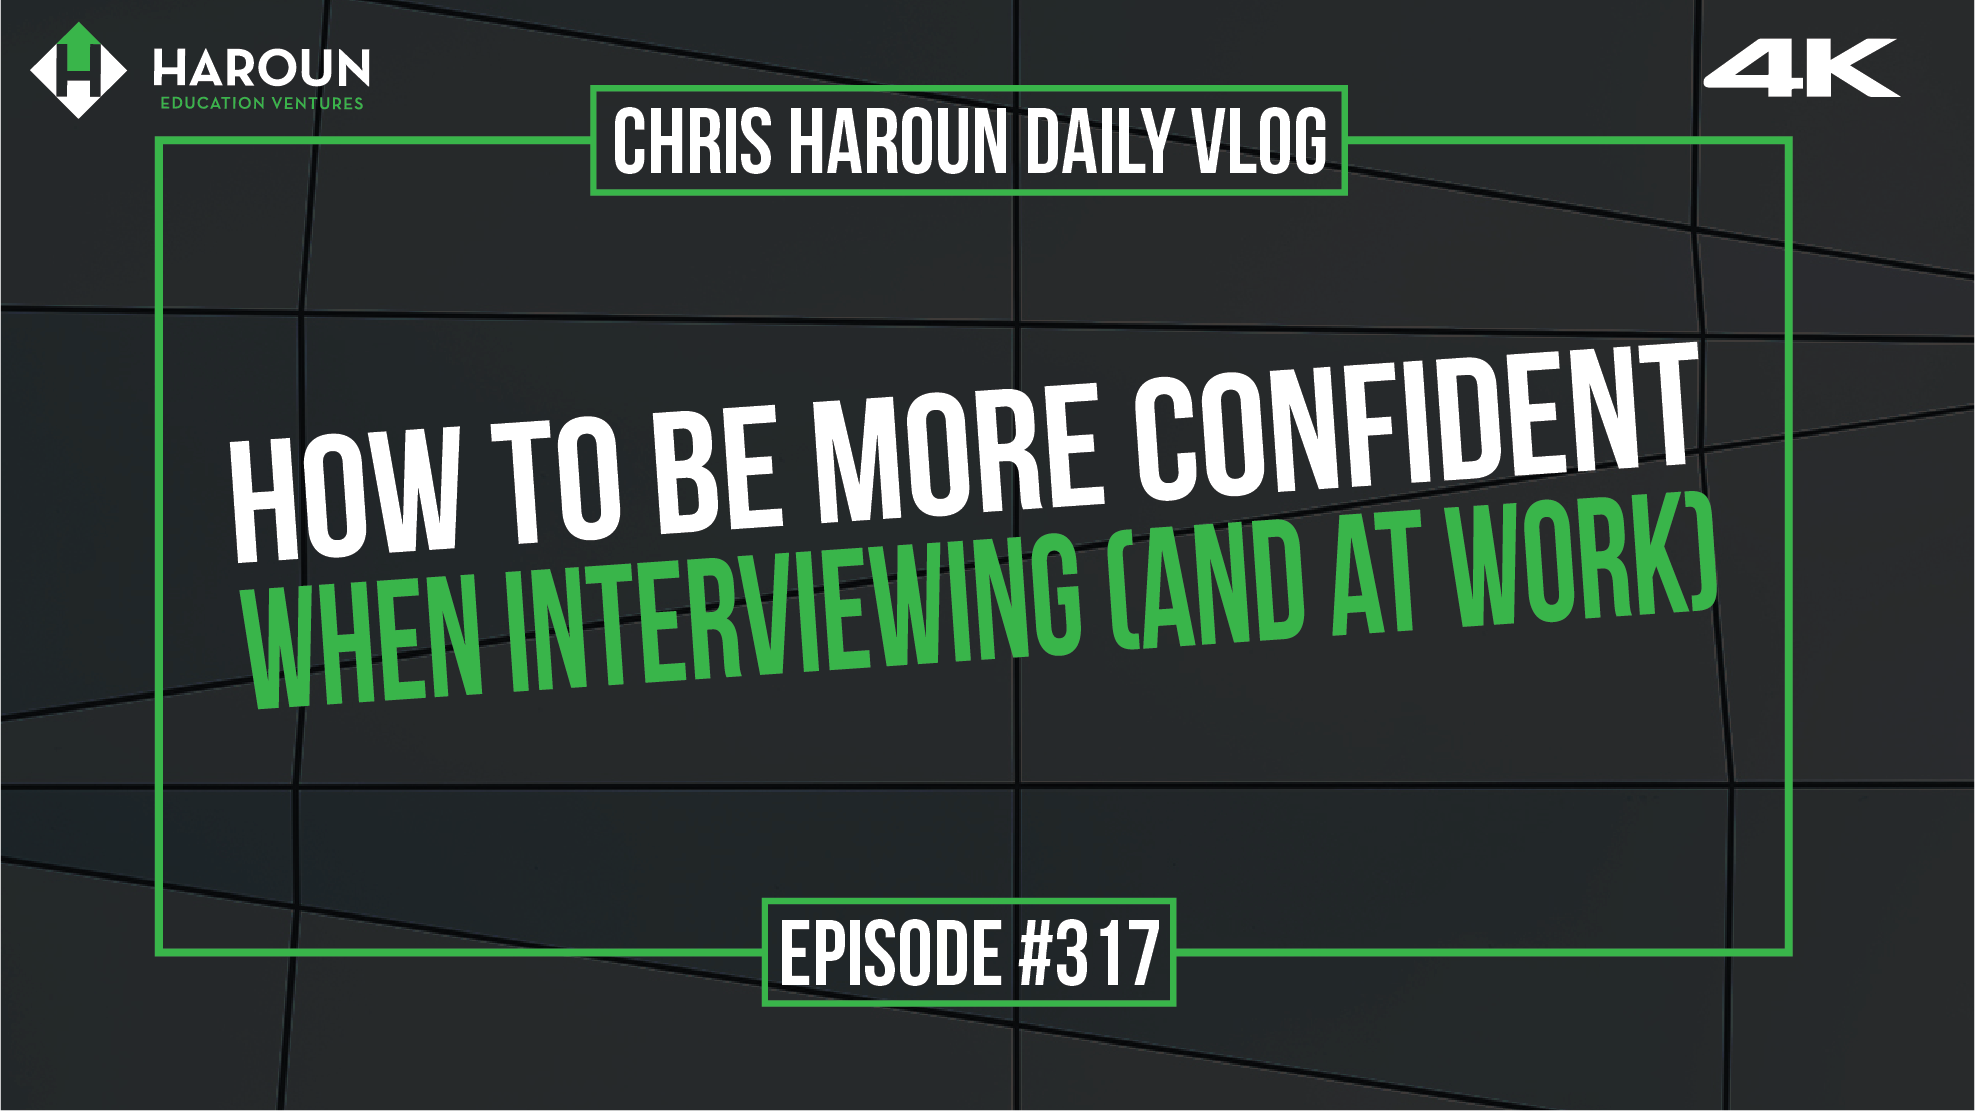 VLOG_317_6_13_2019_How to Be More Confident When Interviewing (and at Work).png